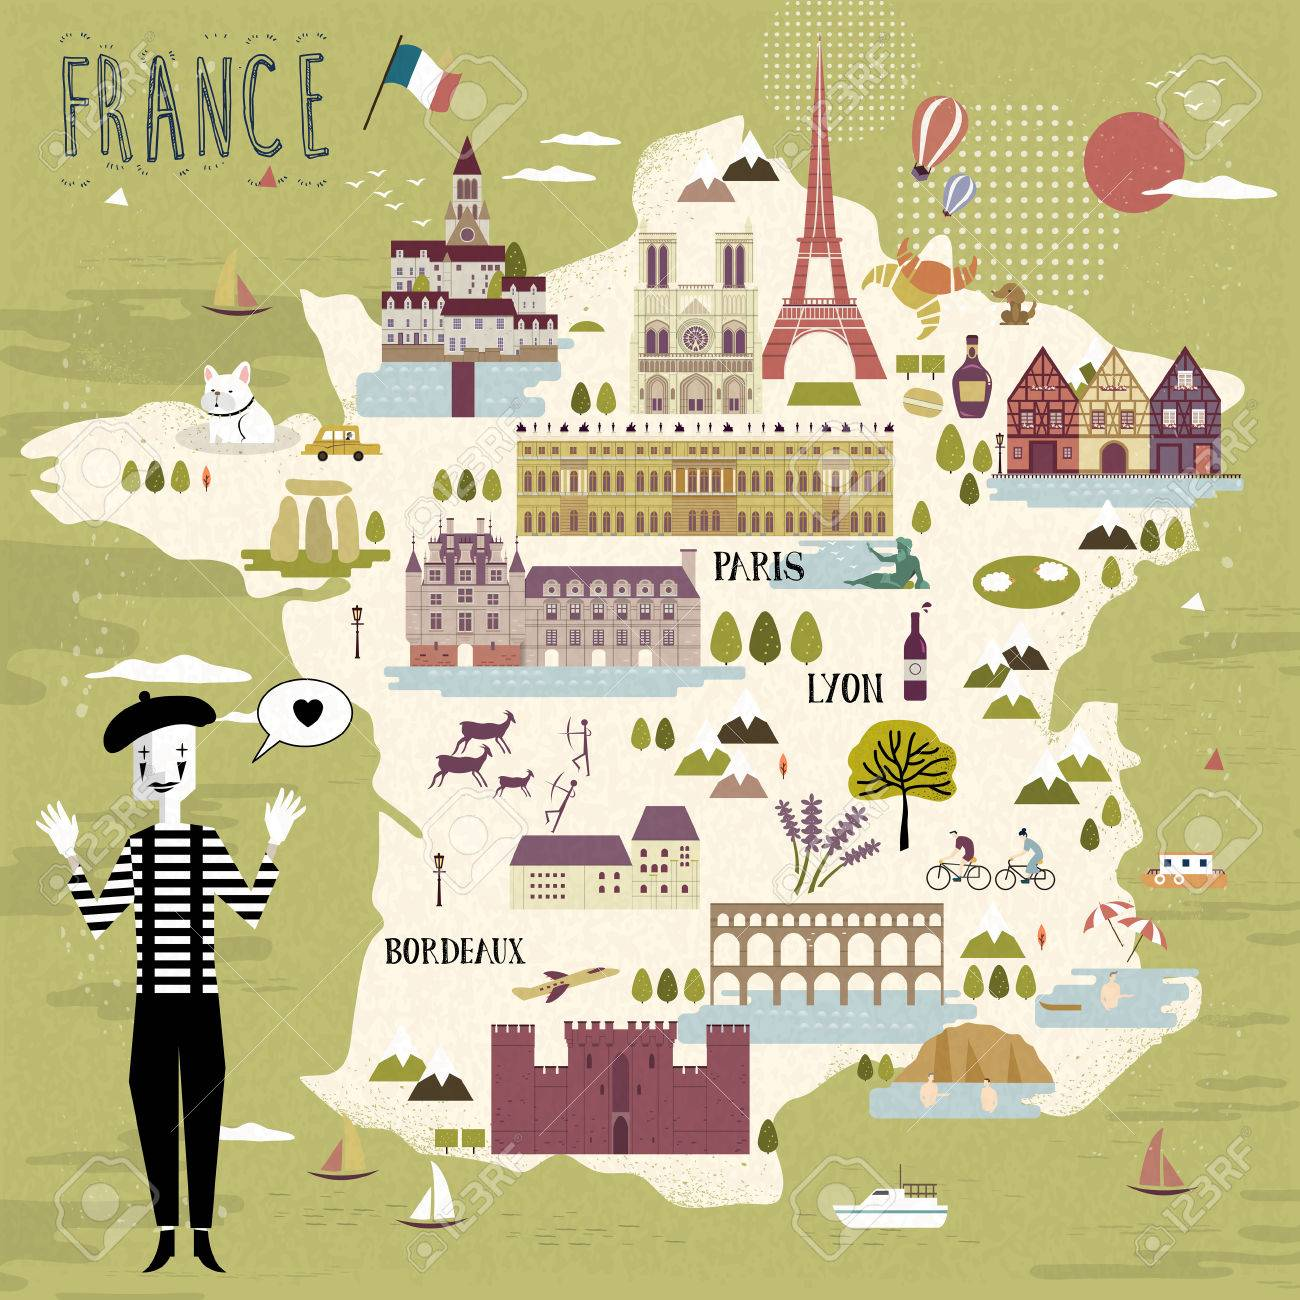 Travel Map Of France.Adorable France Travel Map With Attractions And Specialties Royalty